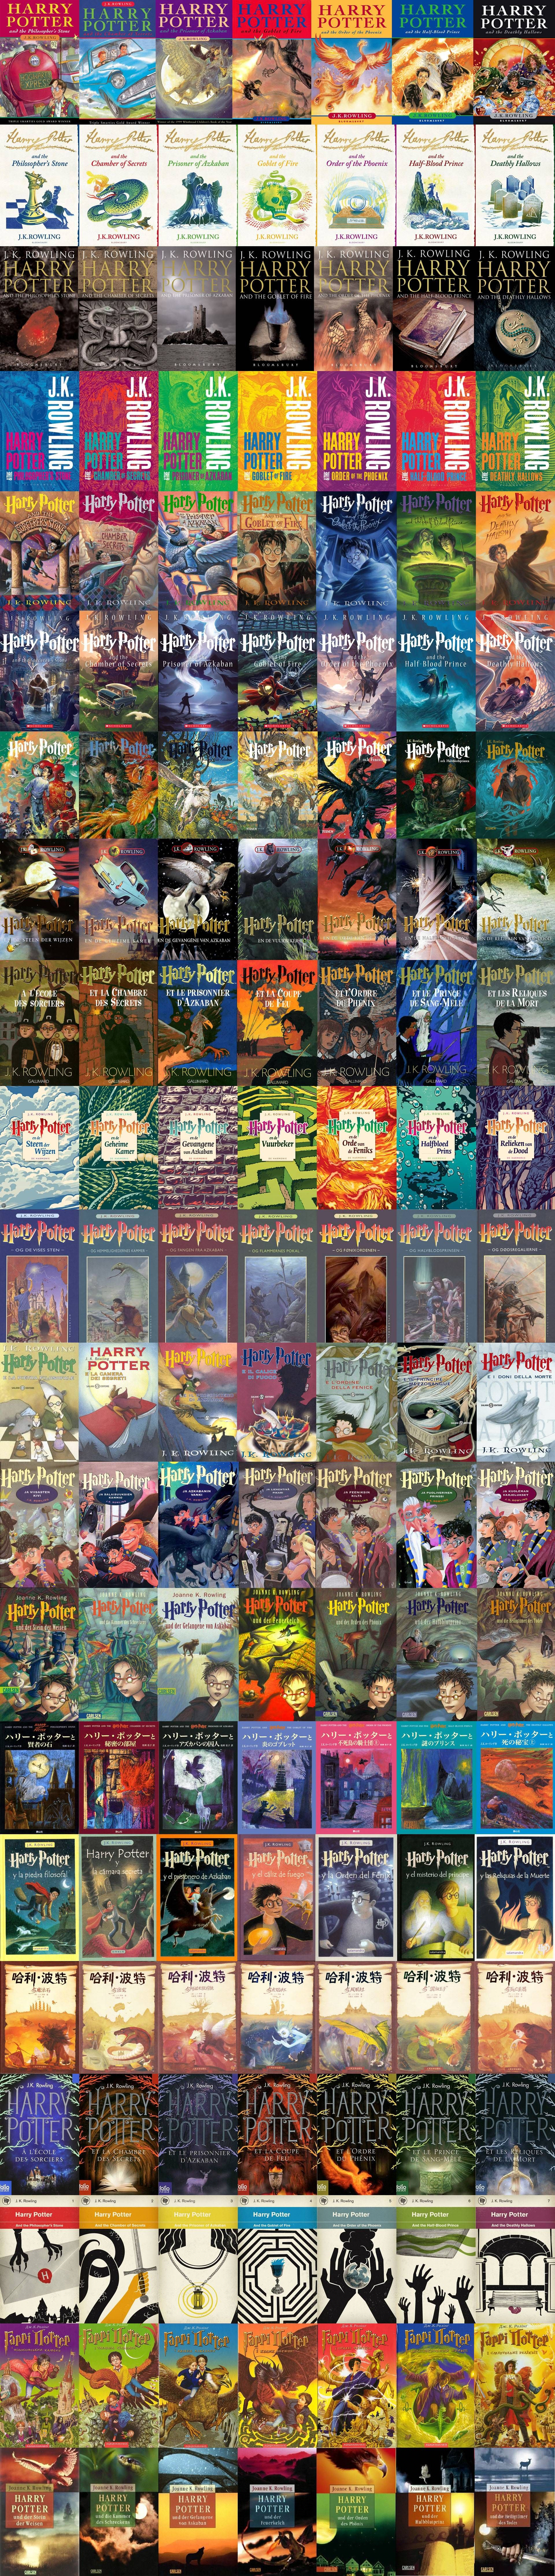 21 Different Cover Art Styles Of Harry Potter Harry Potter Book Covers Harry Potter Movies Harry Potter Fan